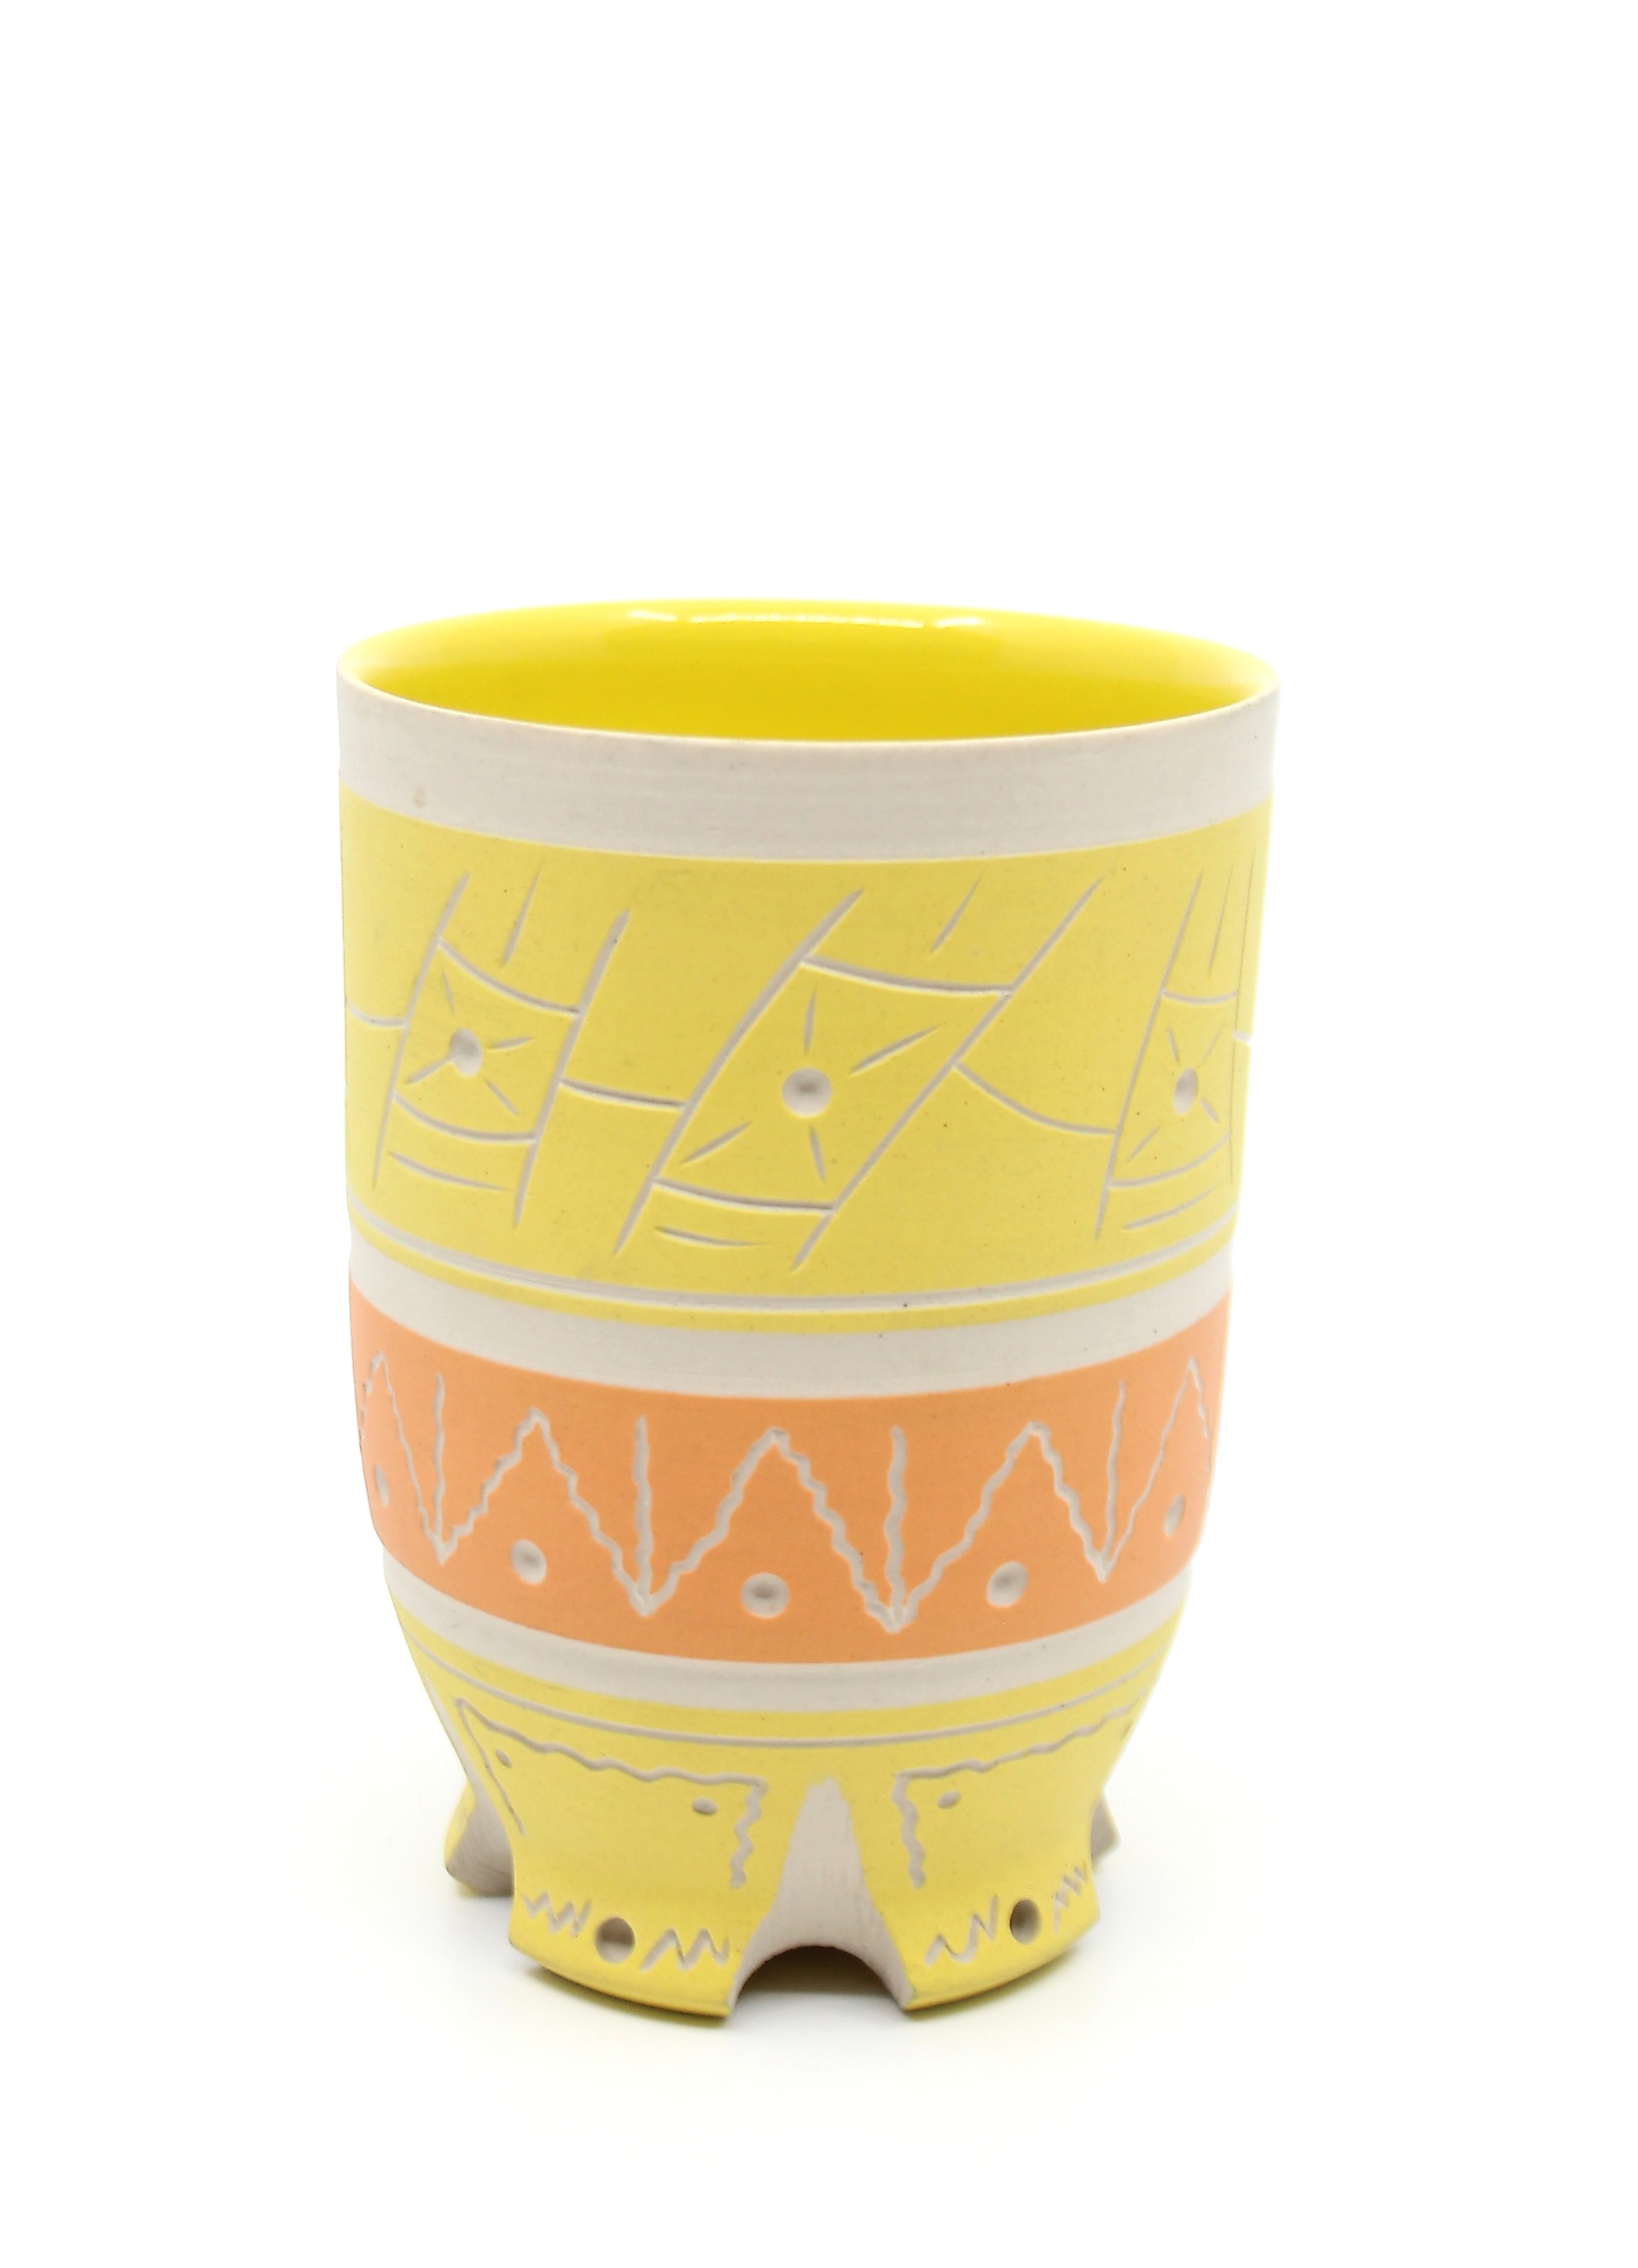 Yellow & Orange Cup by Chris Casey